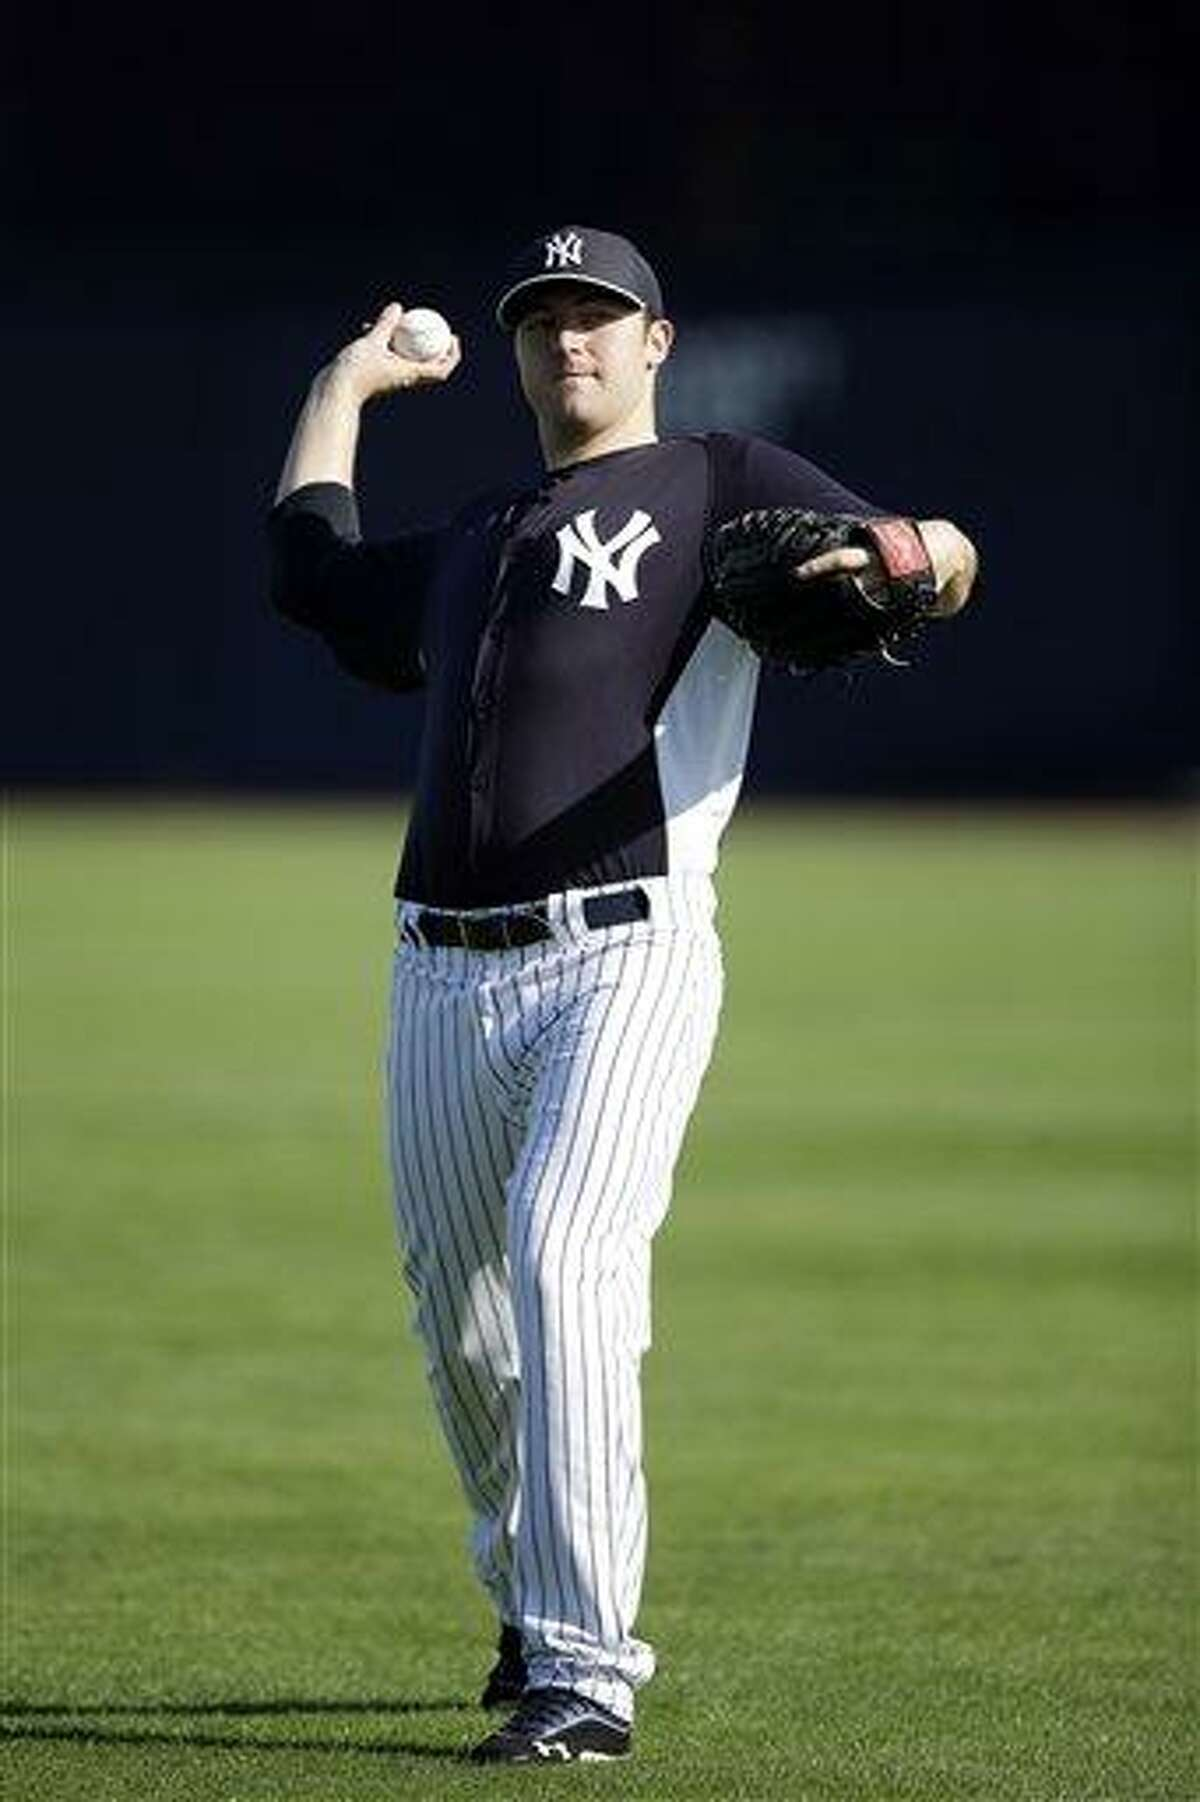 New York Yankees' Phil Hughes pitches during a workout at baseball spring training, Saturday, Feb. 16, 2013, in Tampa, Fla. (AP Photo/Matt Slocum)